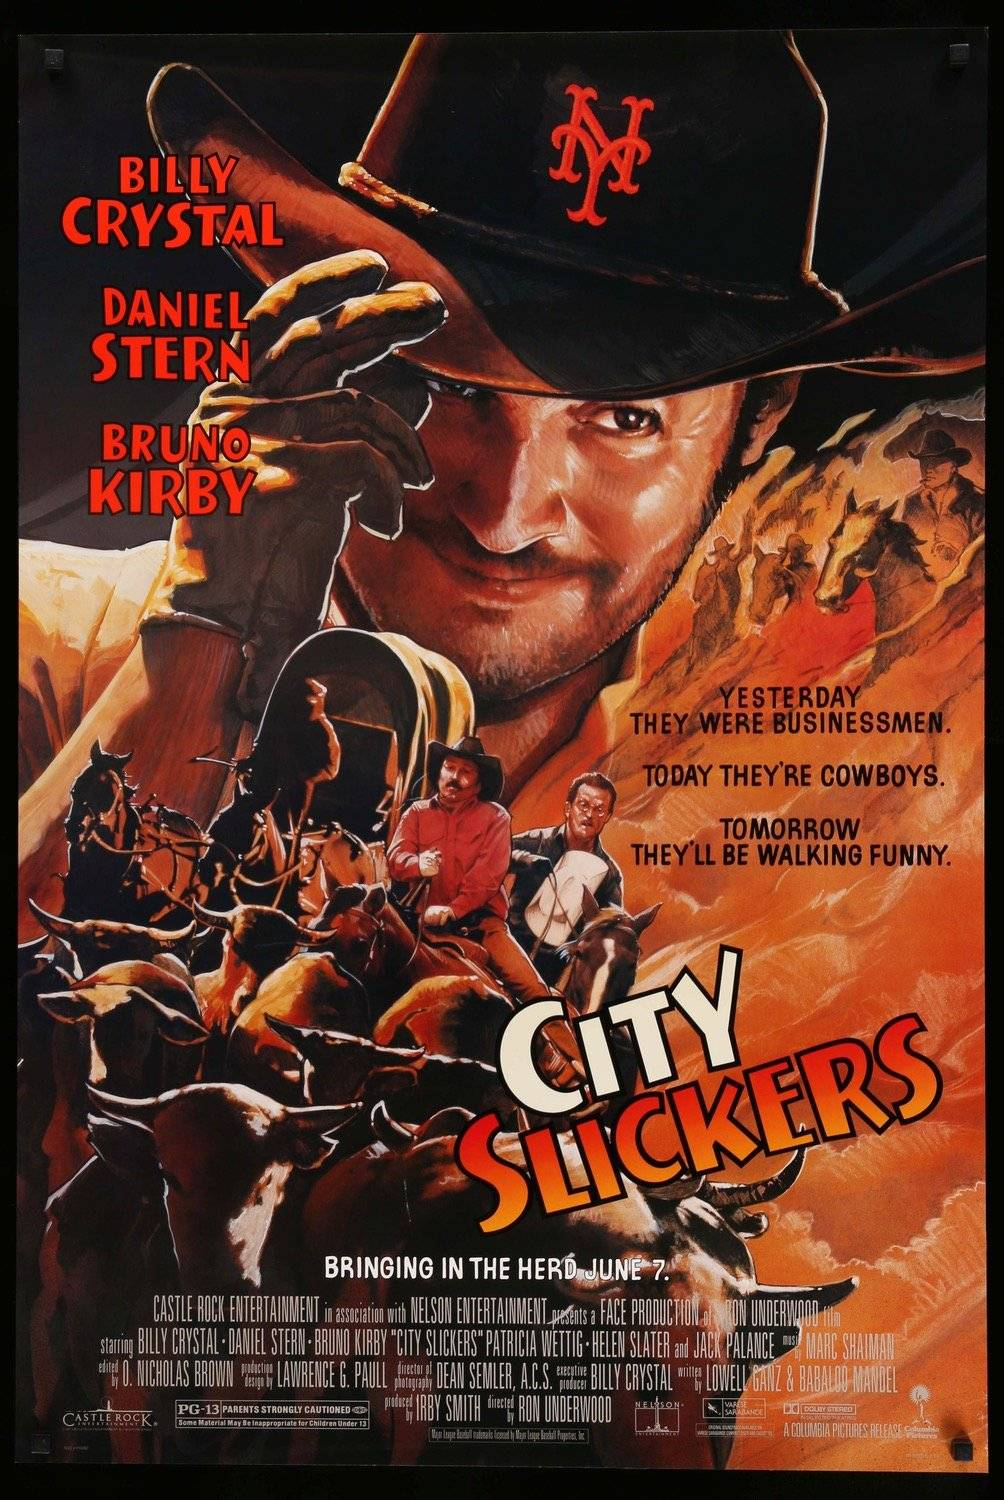 City Slickers and the one thing